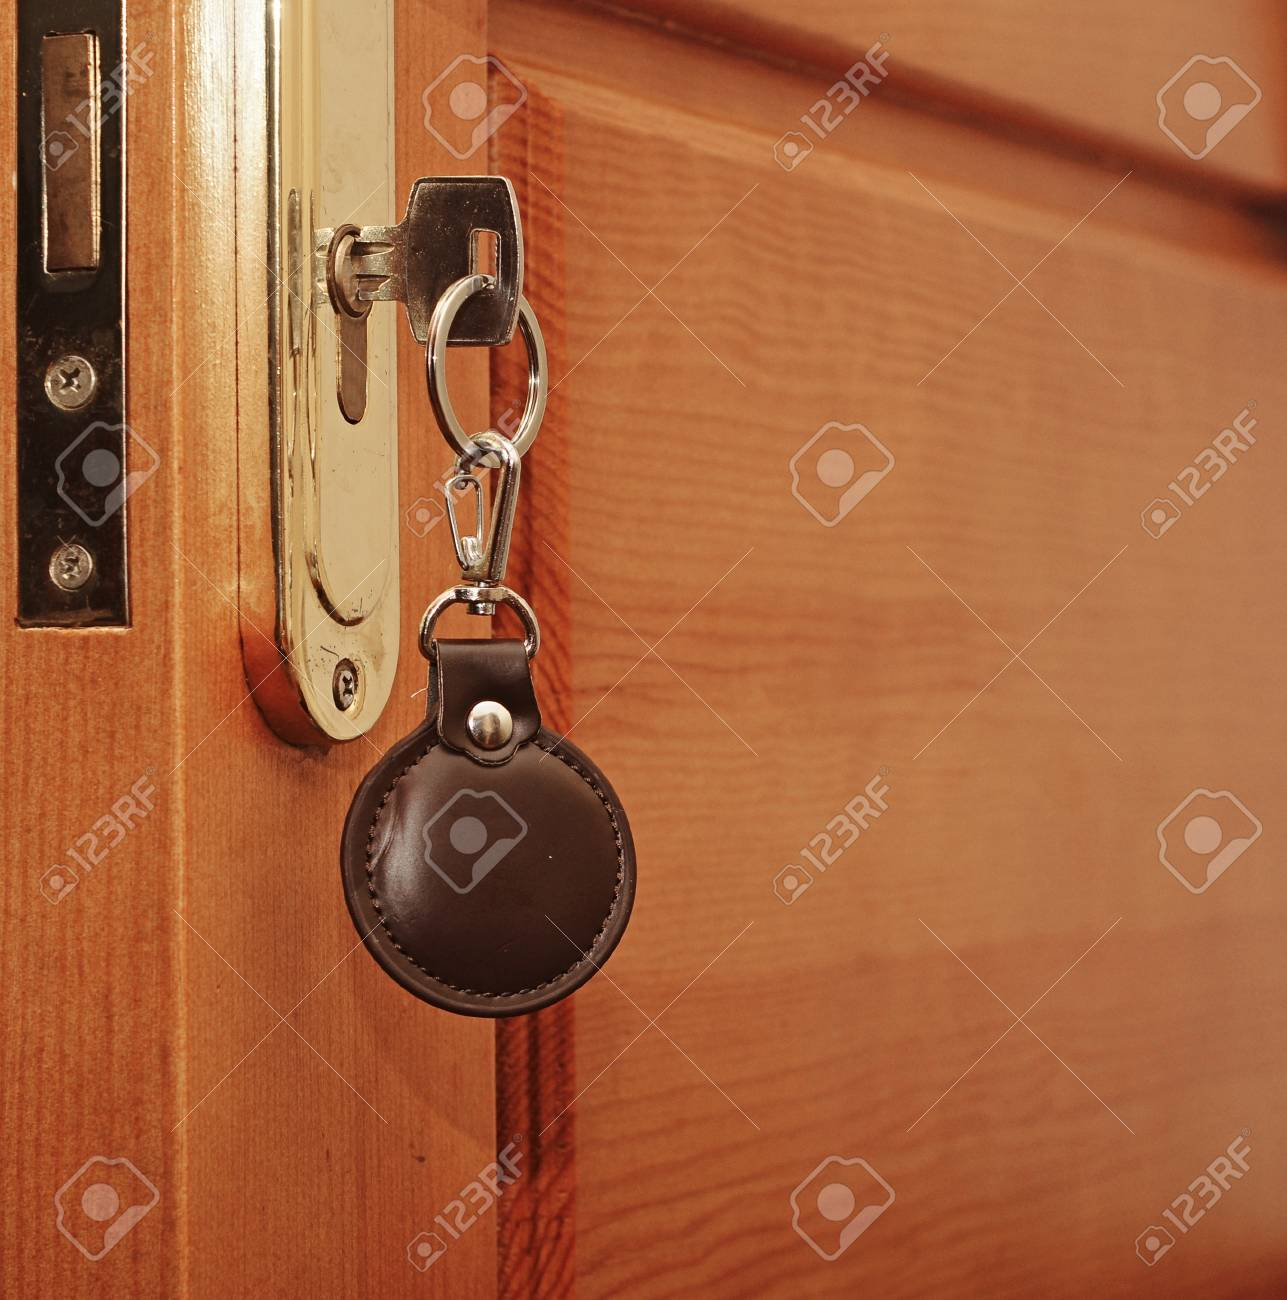 key in keyhole with blank tag Stock Photo - 21046980